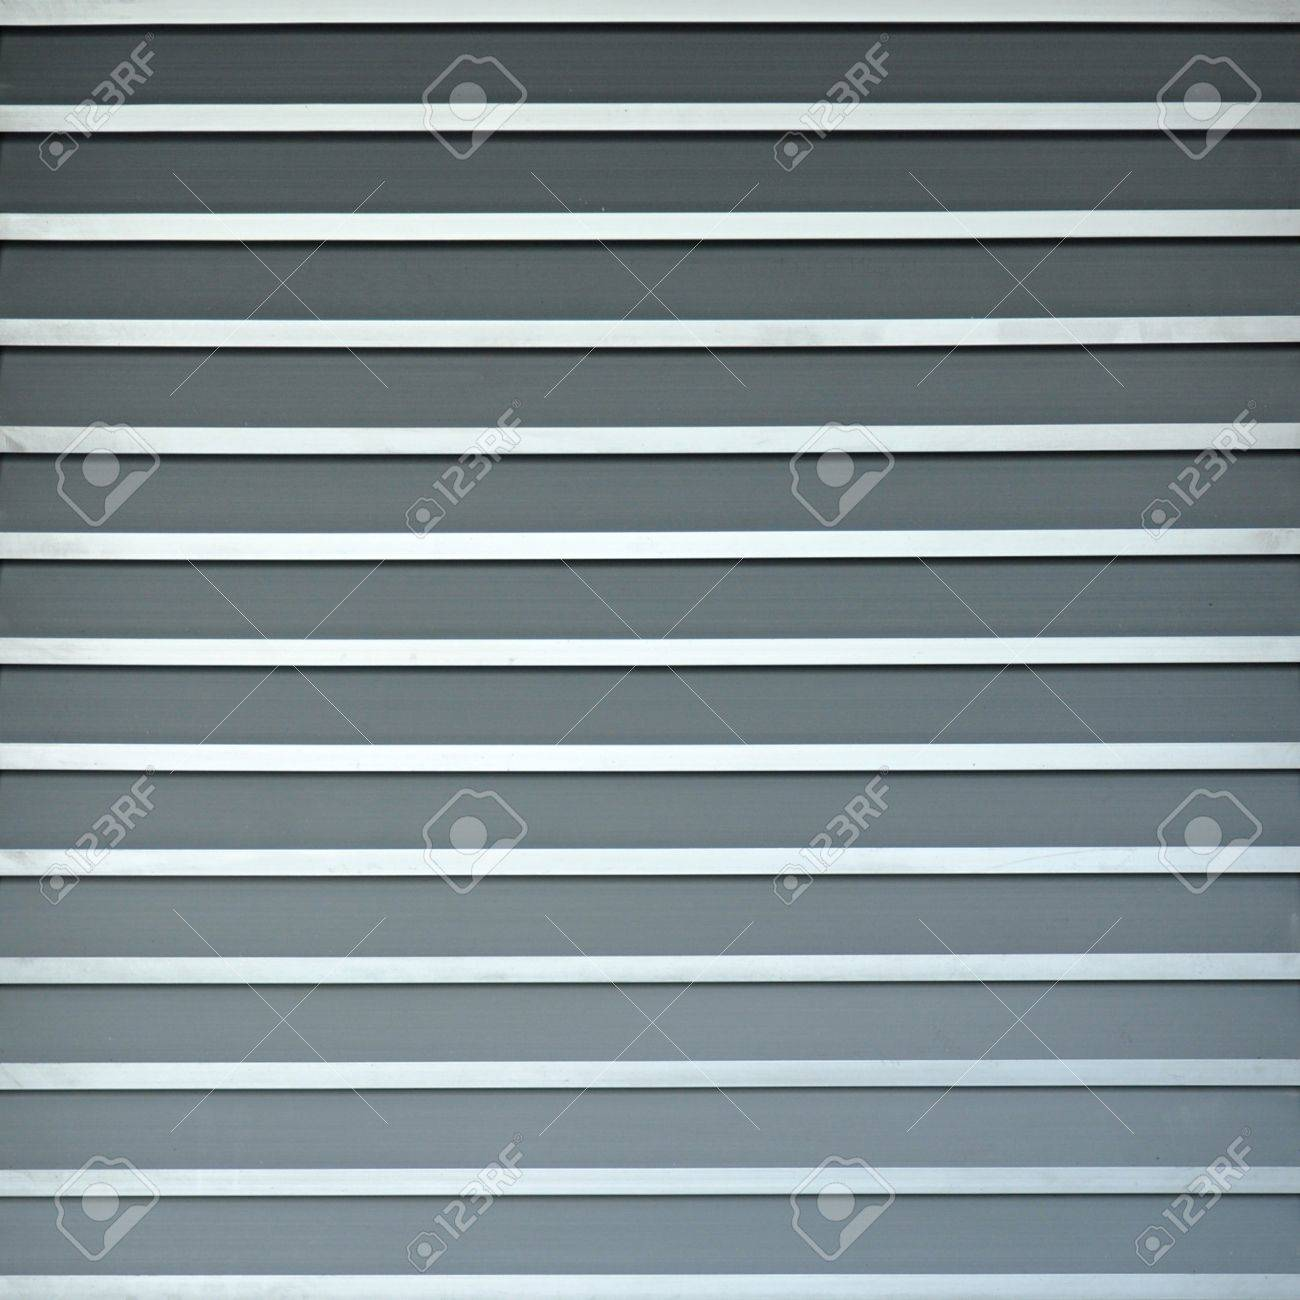 louver stock photos & pictures. royalty free louver images and